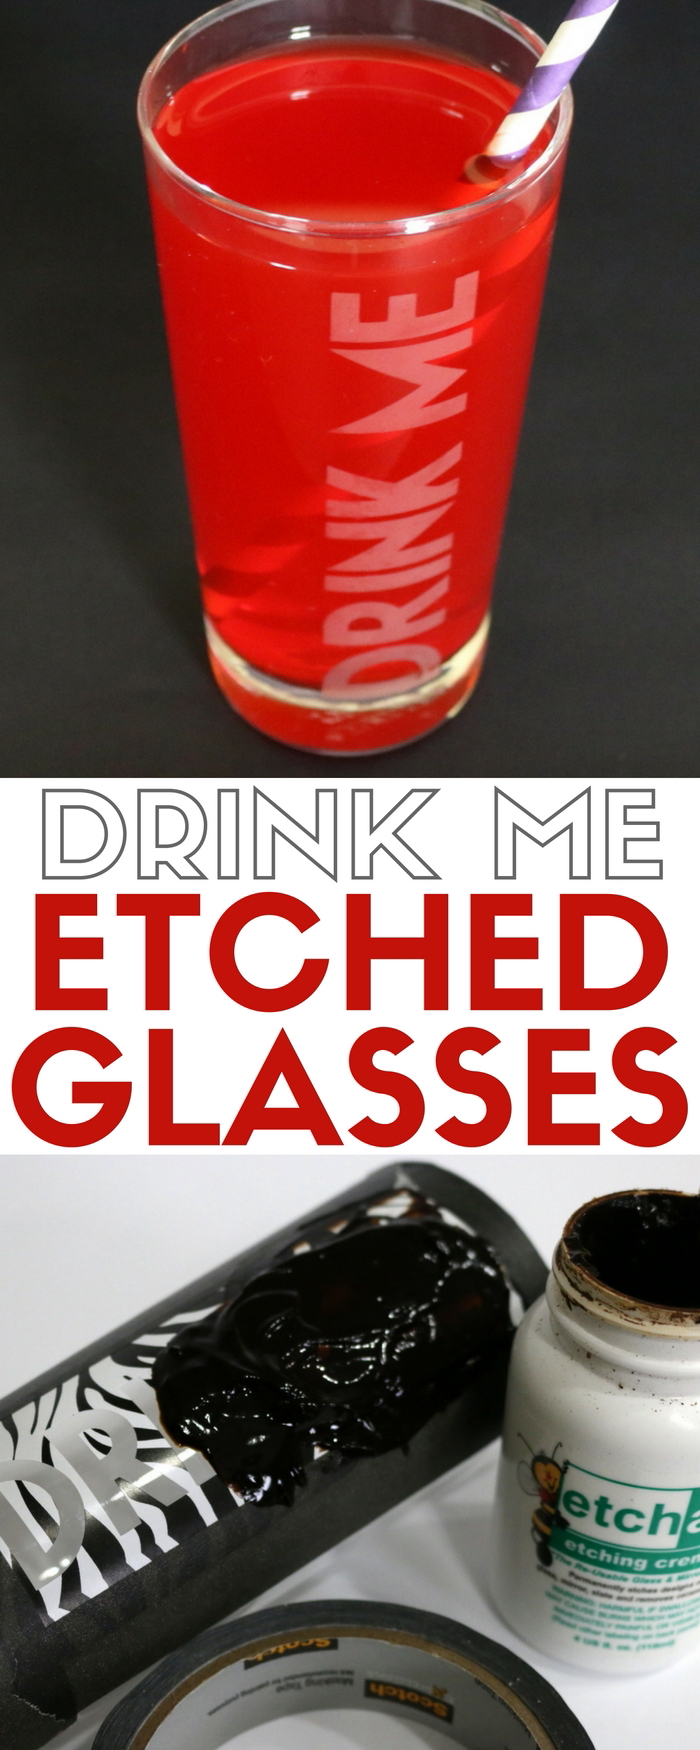 How to make glass etched drinking glasses with etching cream. An easy DIY craft tutorial idea, perfect for the kitchen or make personalized handmade gifts.